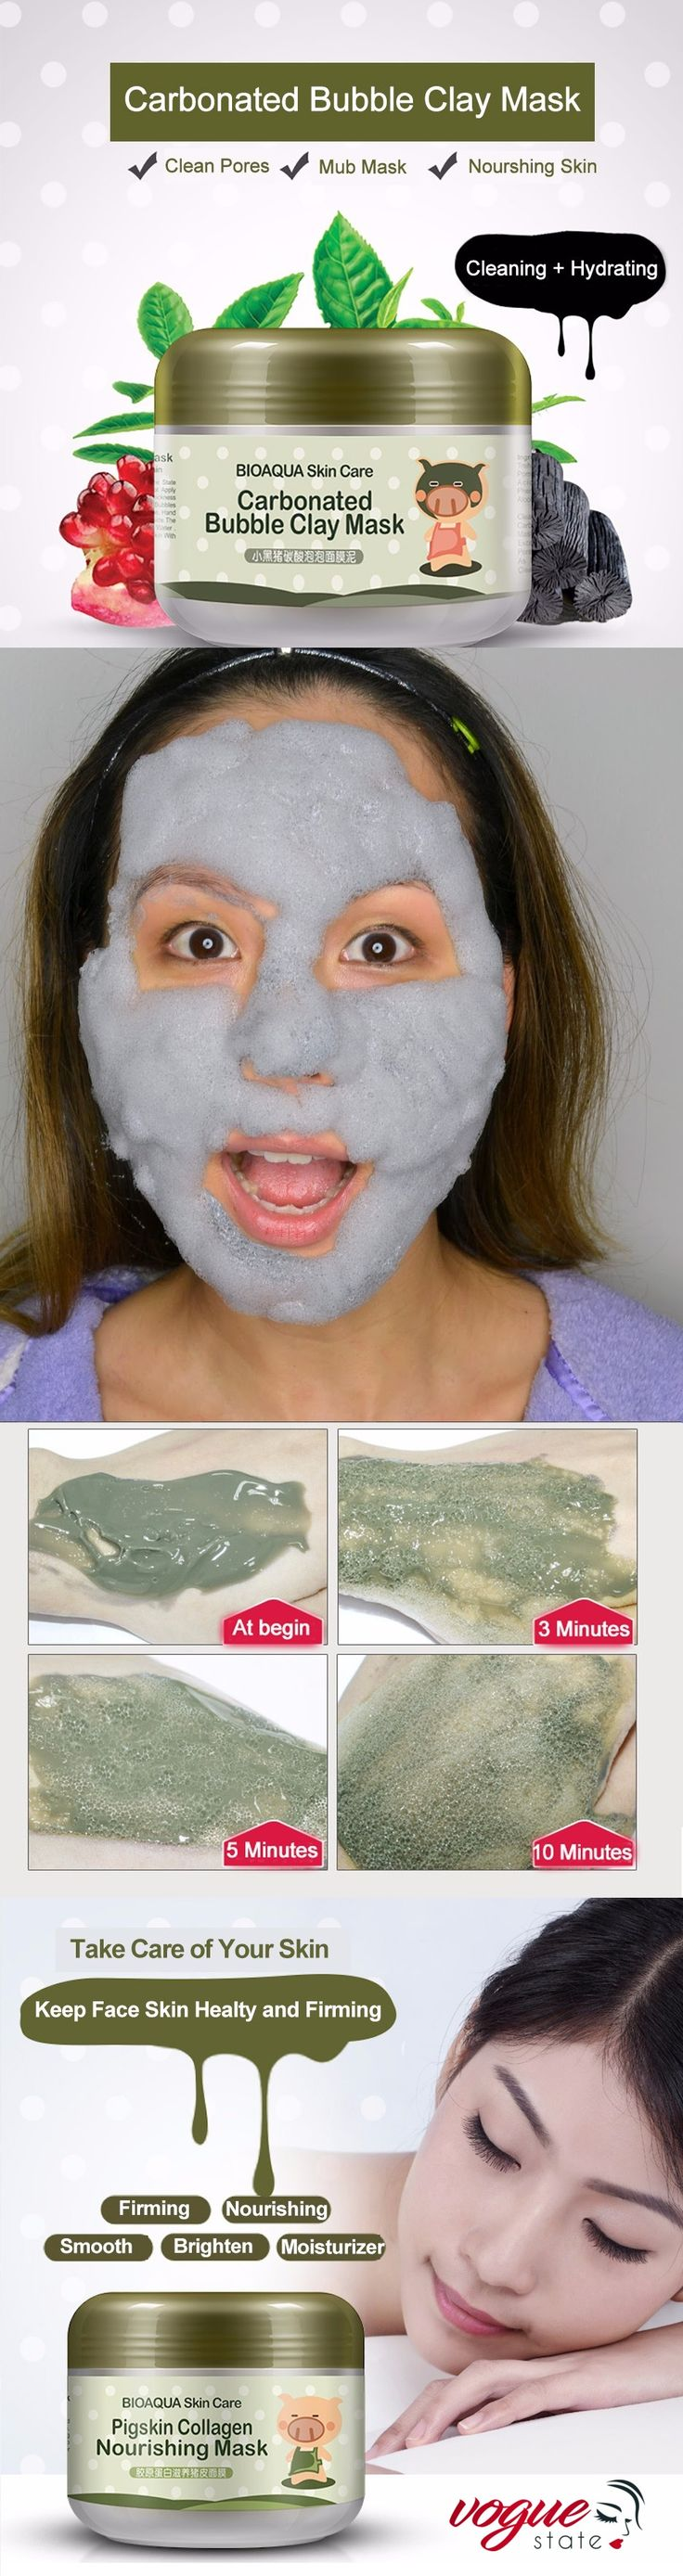 Carbonated Clay Mask Carbonated Bubble Clay Mask Clay Masks Mask